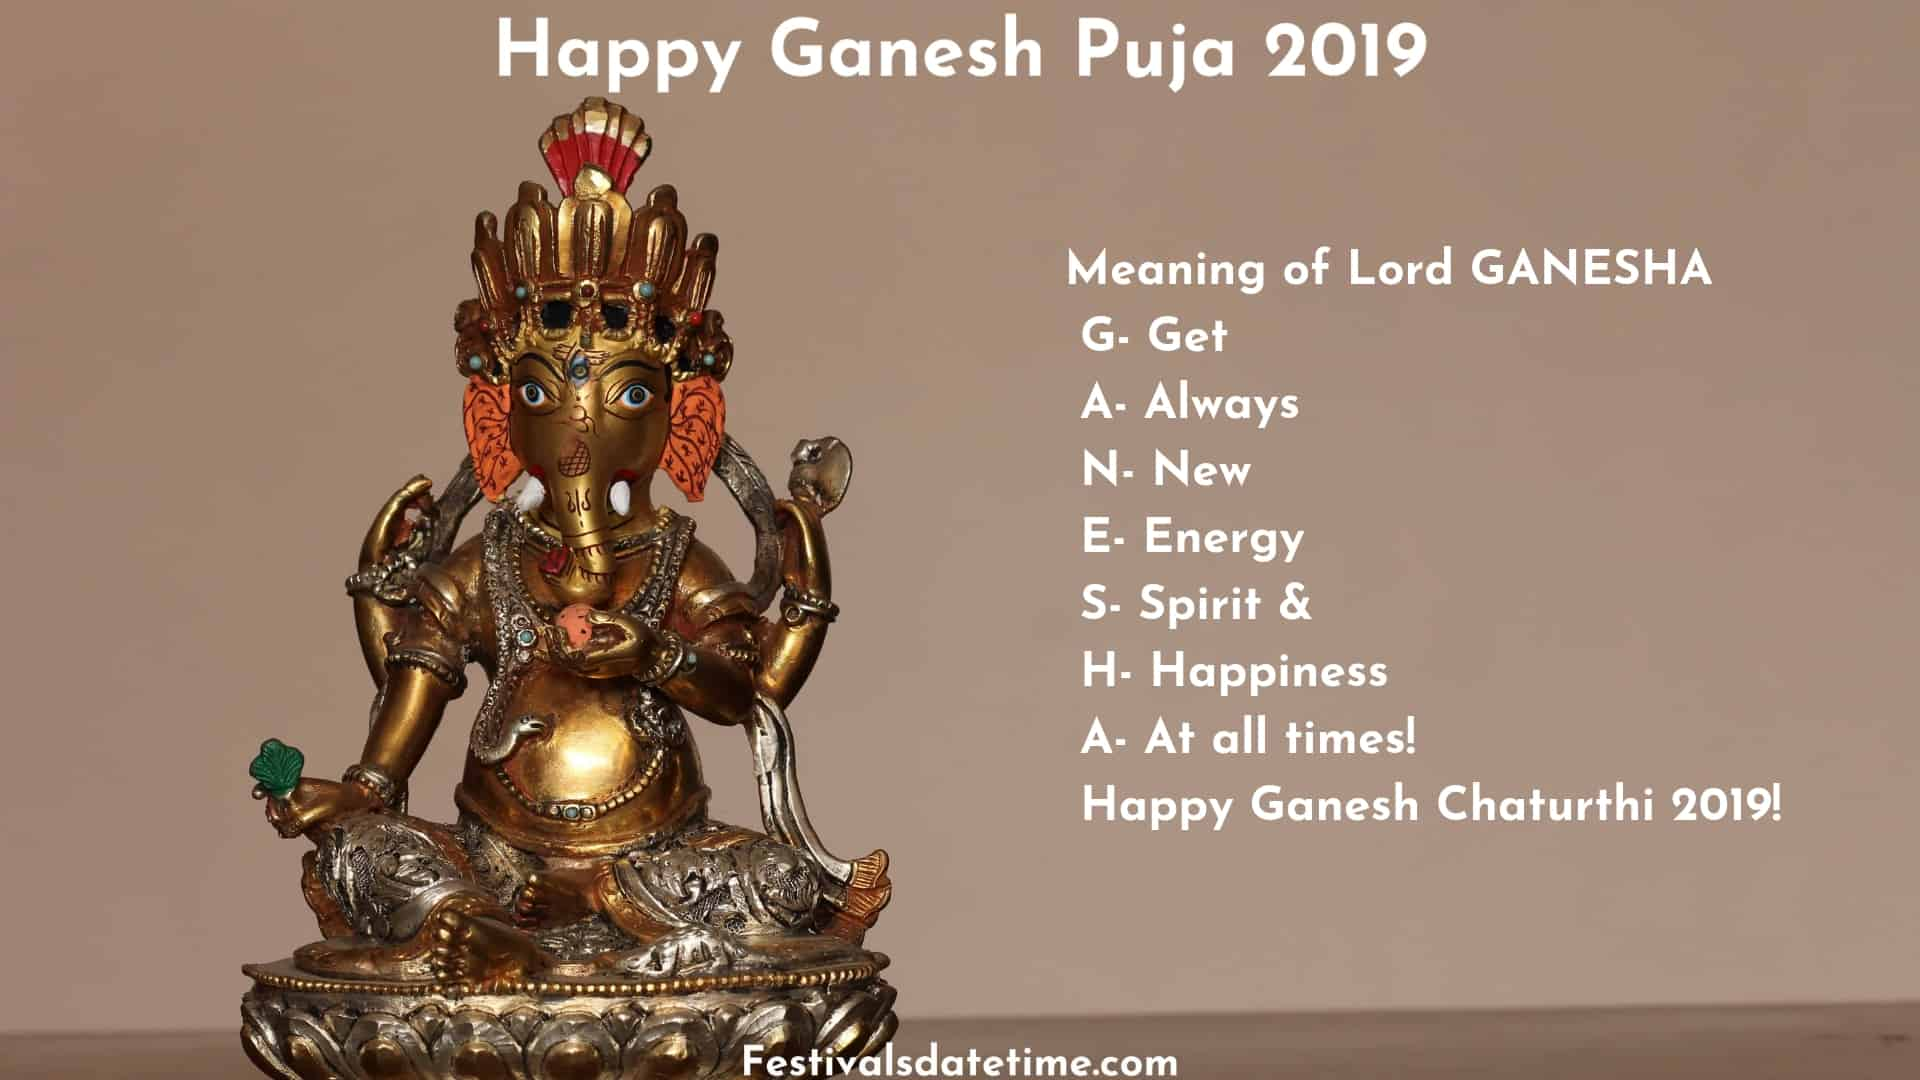 Happy Ganesh Chaturthi Wishes & Quotes | Festivals Date & Time